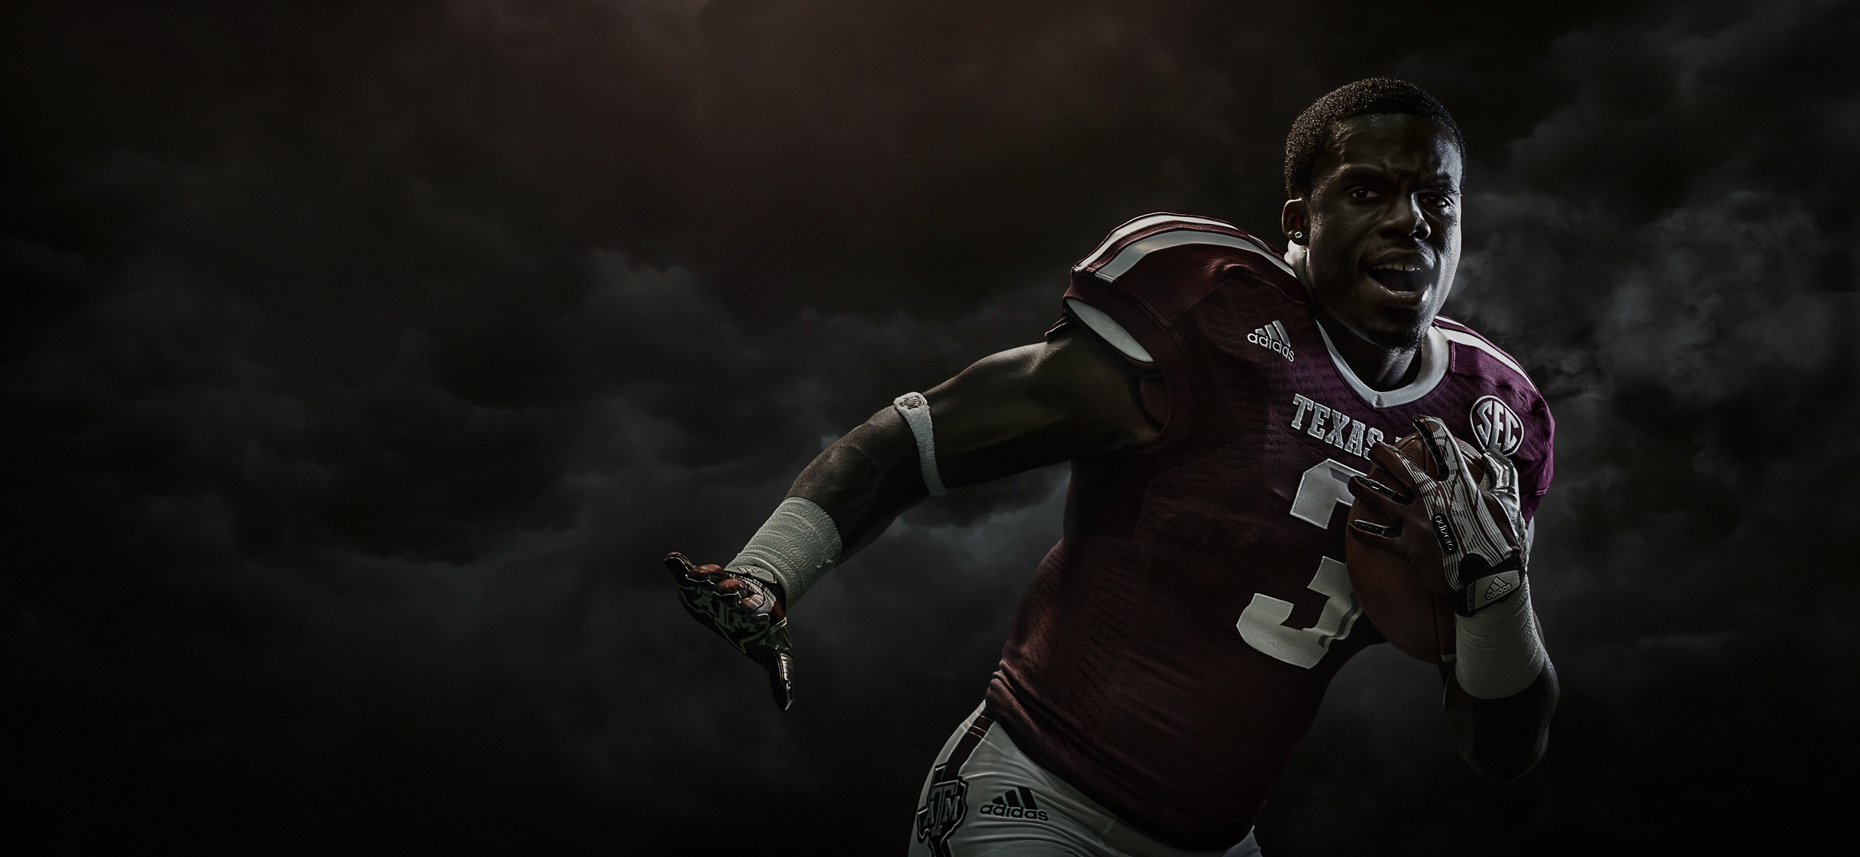 Texas A&M college football player Trey Williams photographed in College Station, Texas